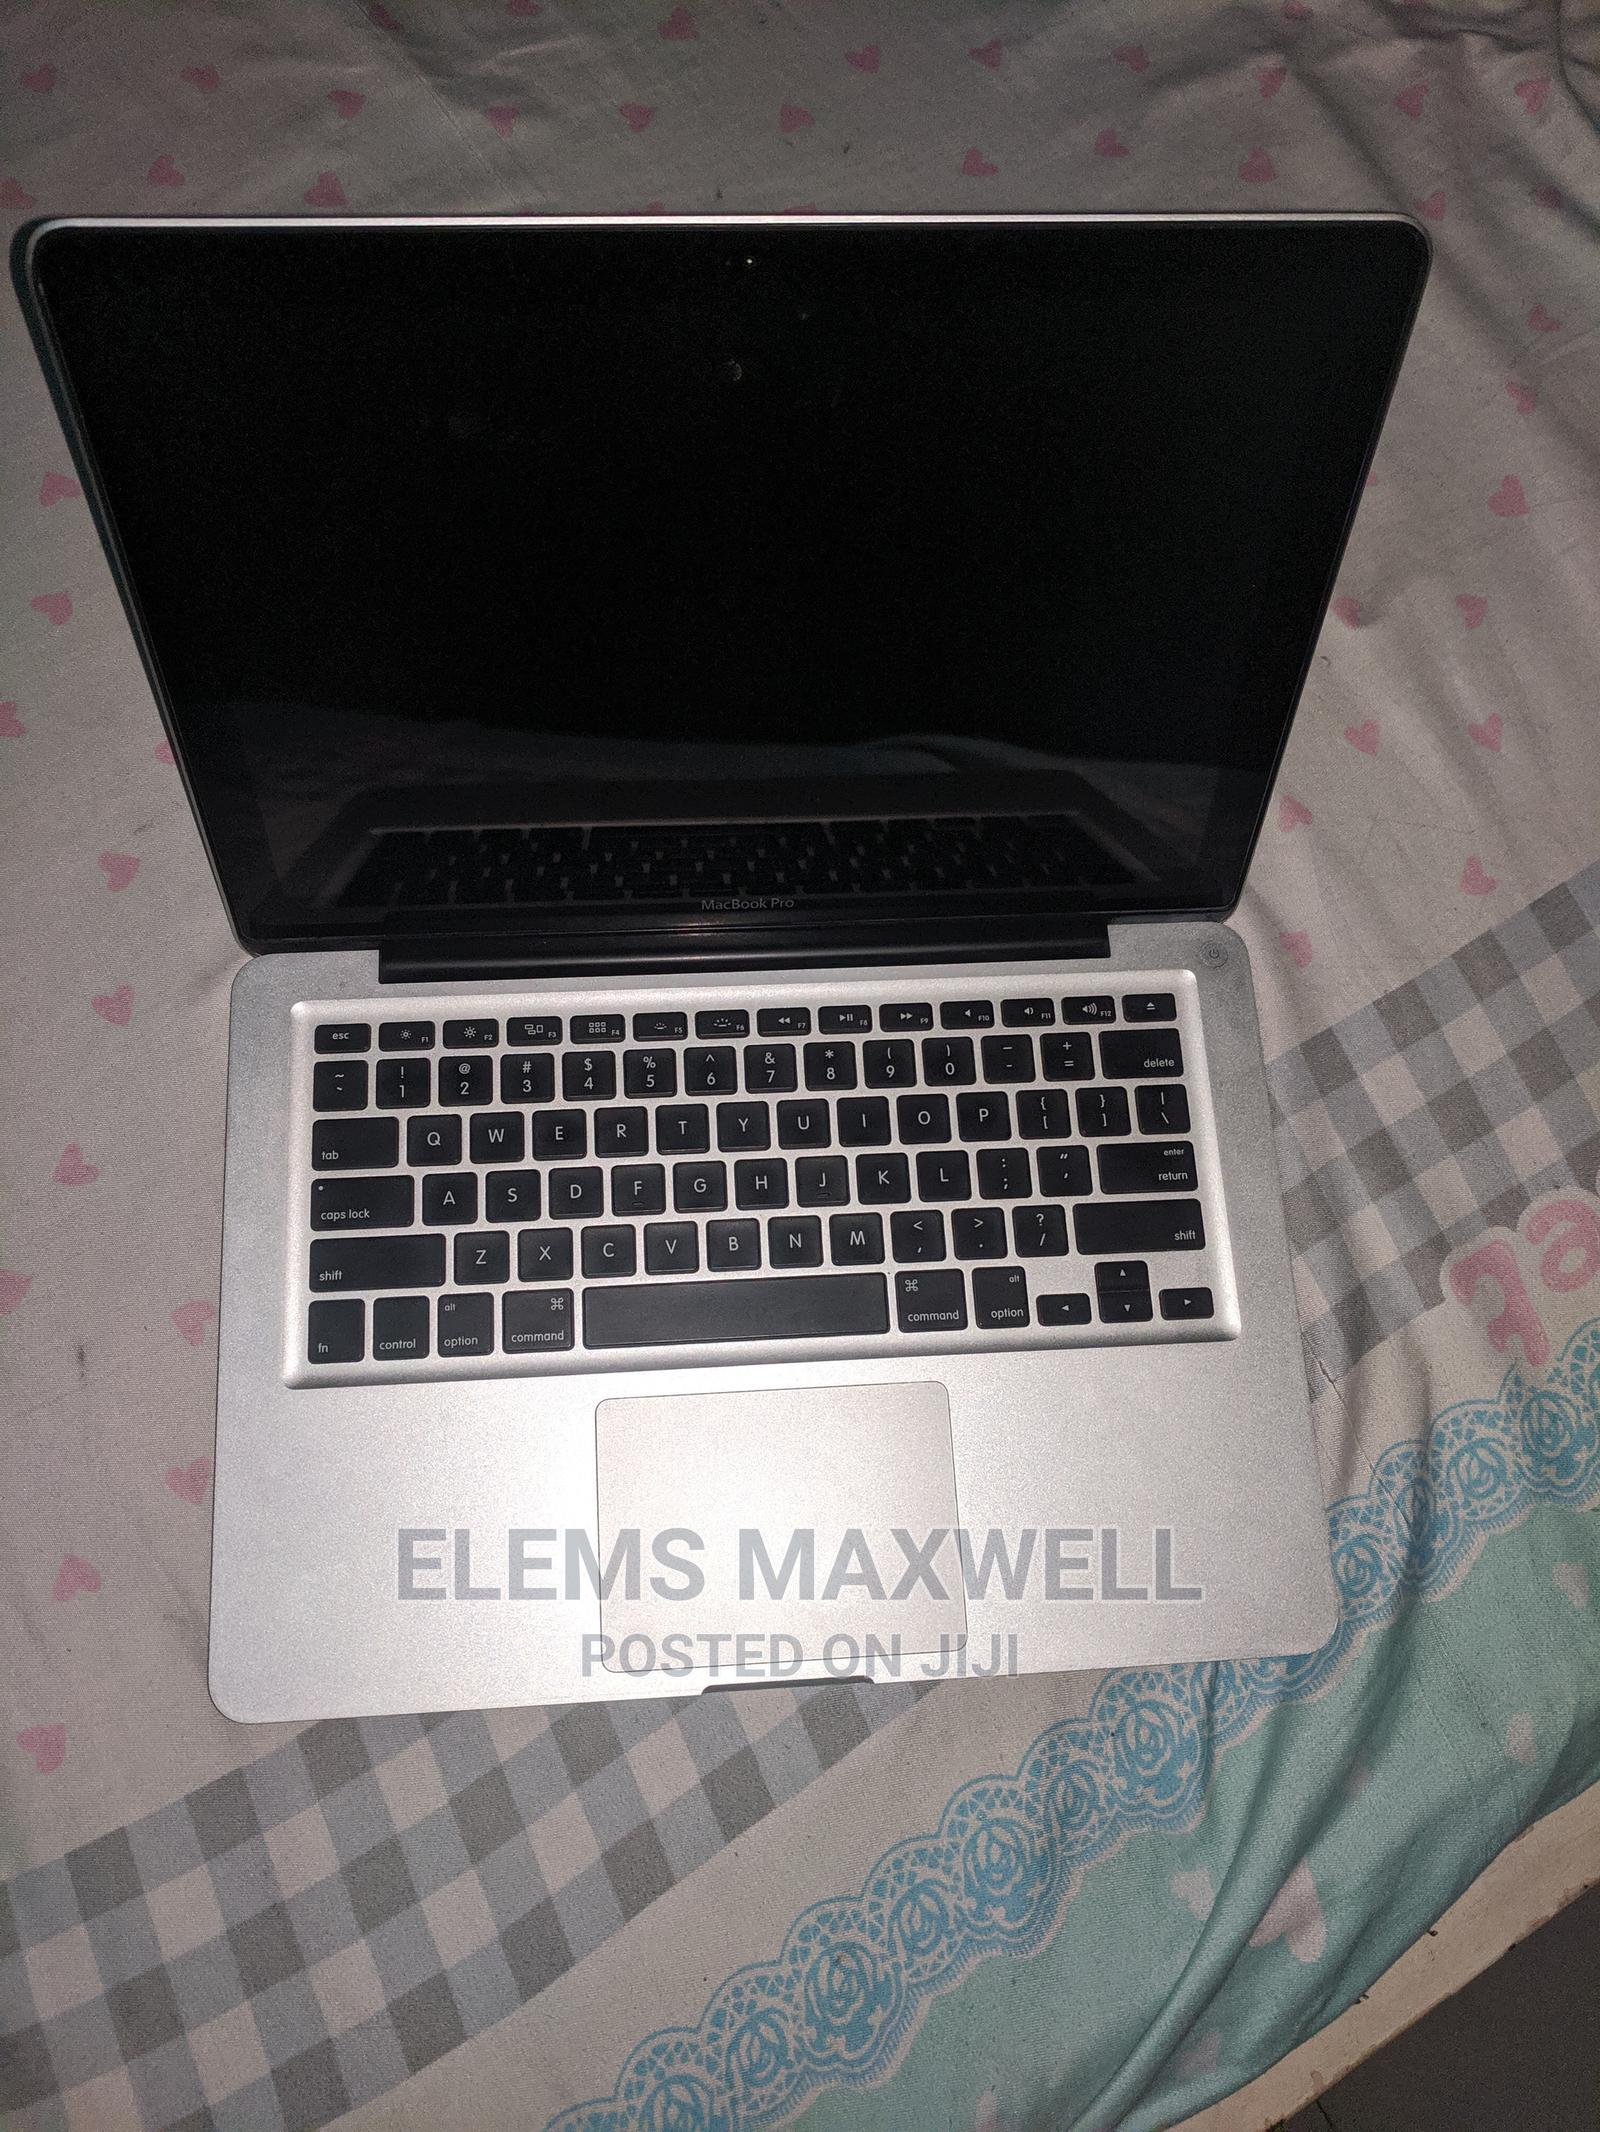 Laptop Apple MacBook Pro 2012 4GB Intel Core I5 500GB | Laptops & Computers for sale in Port-Harcourt, Rivers State, Nigeria